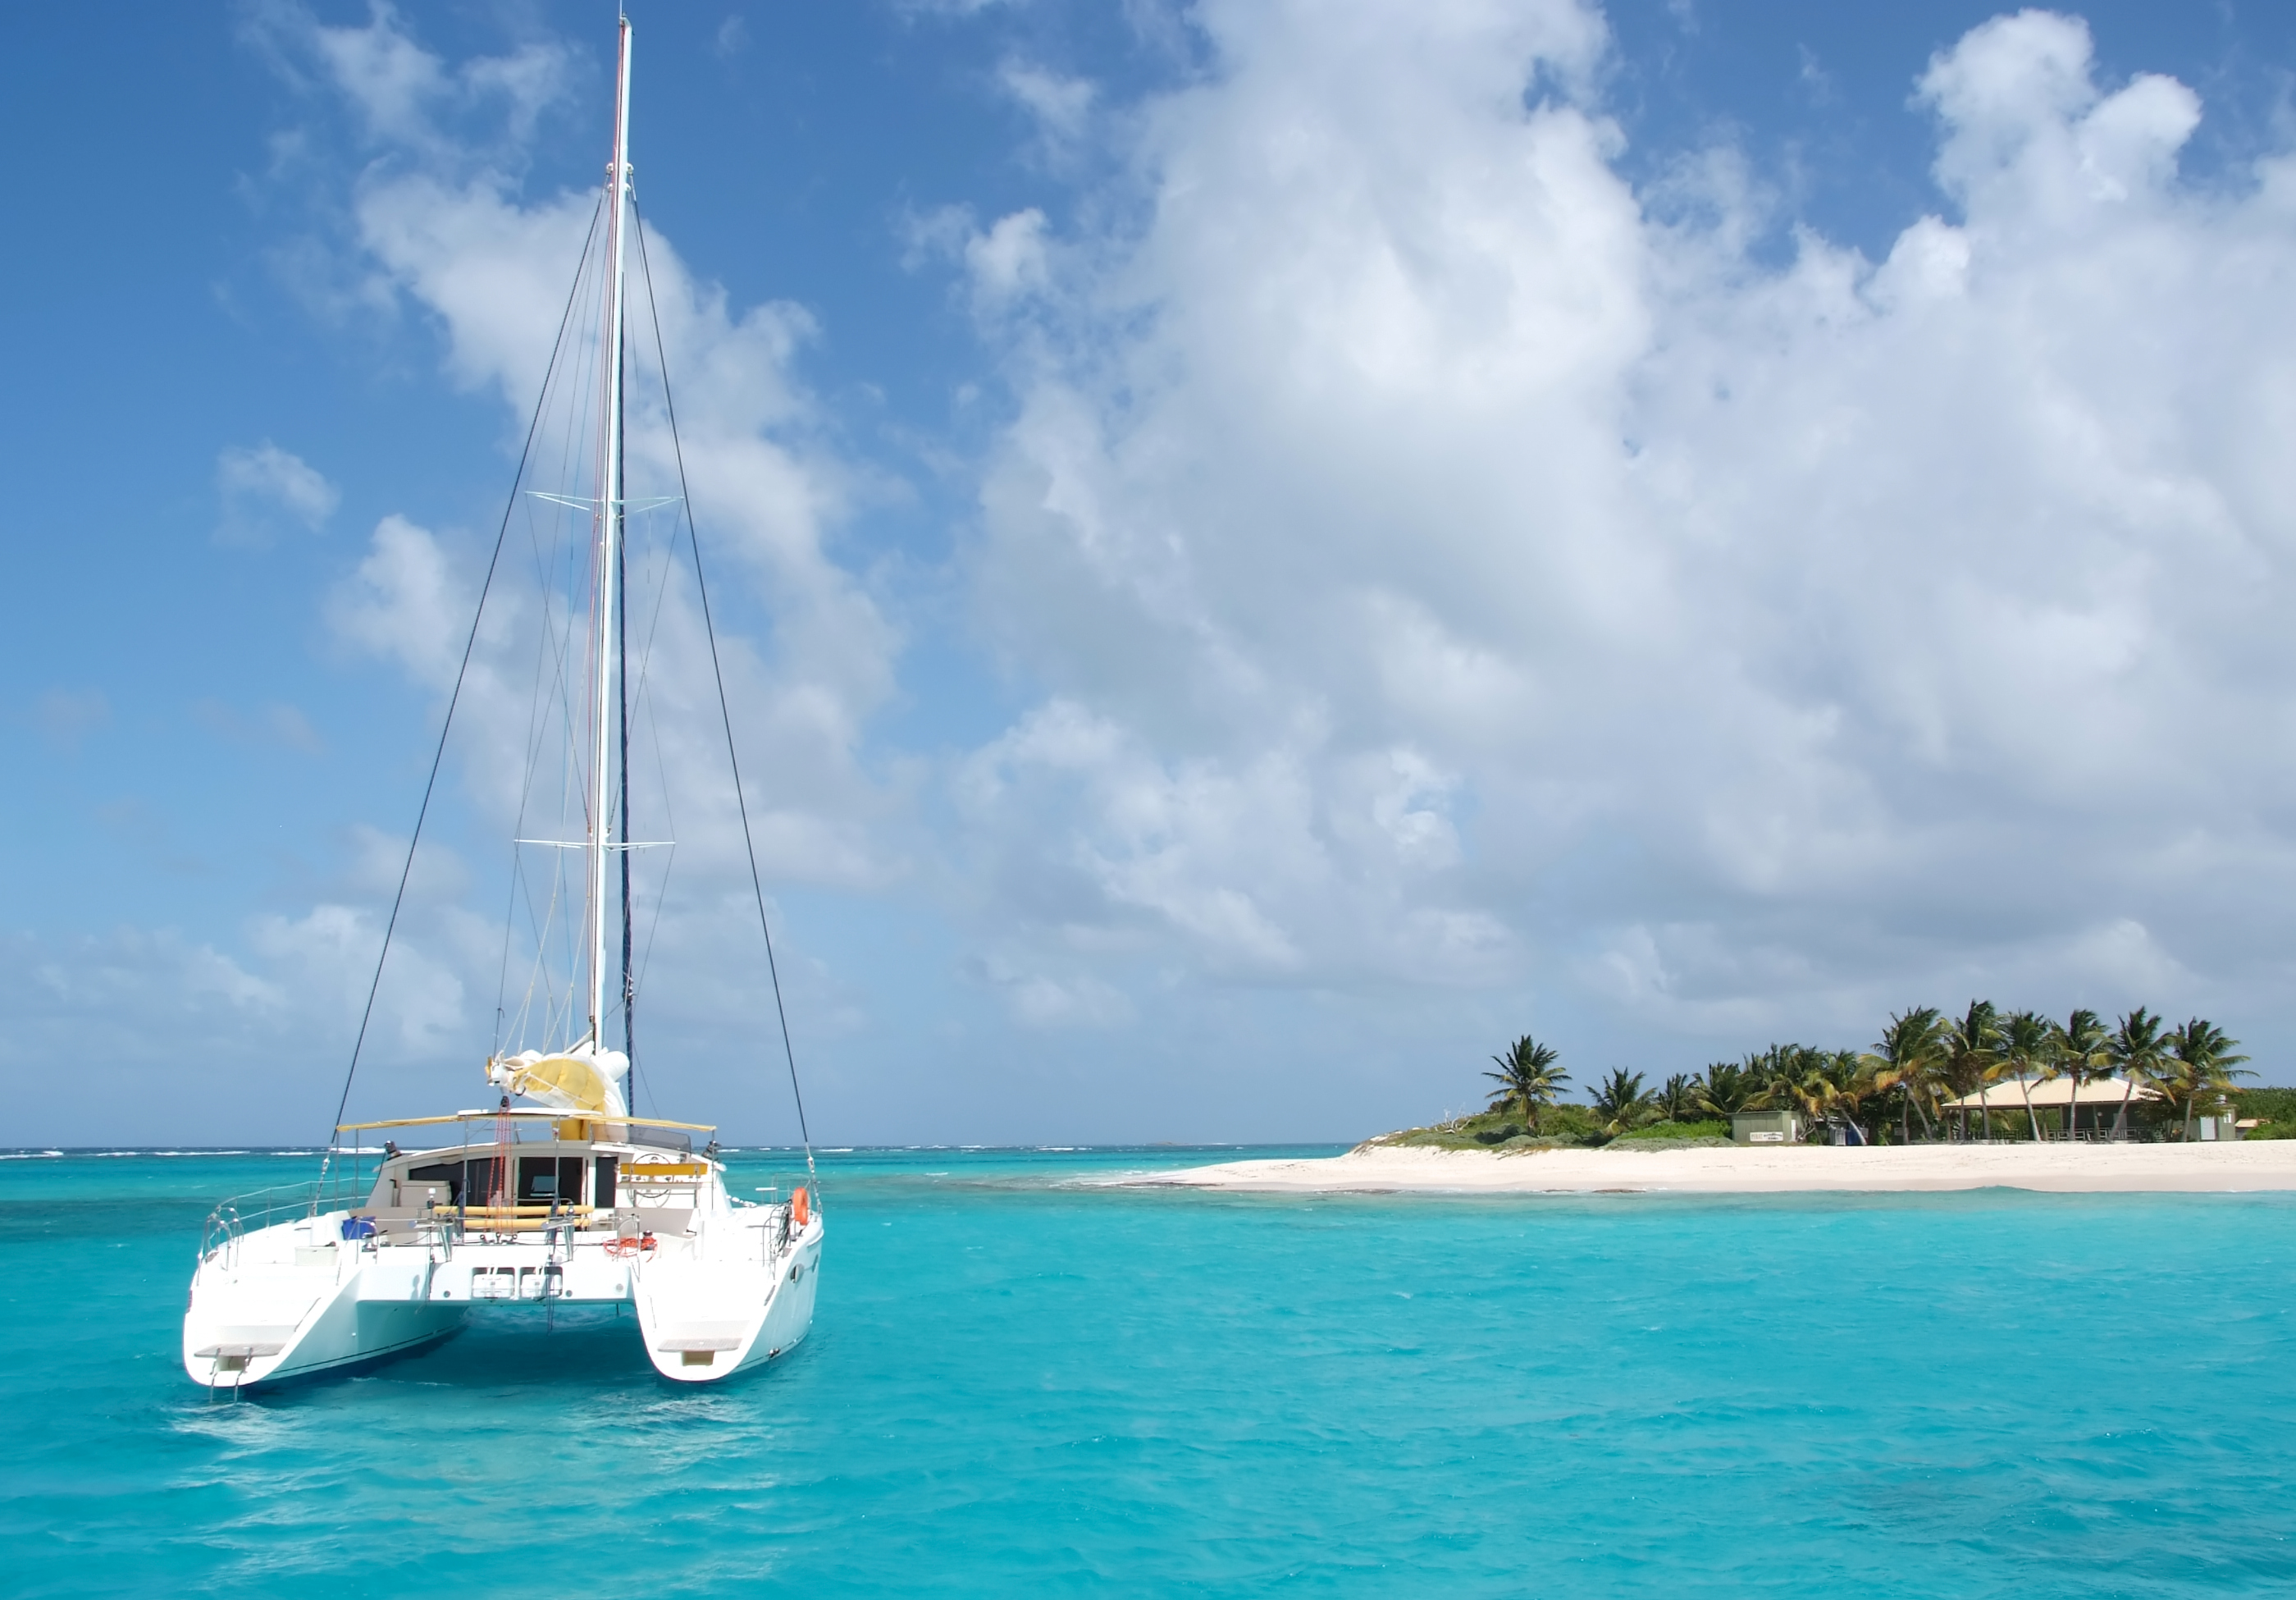 A catamaran near a beach (Marcel Krol/Getty Images)